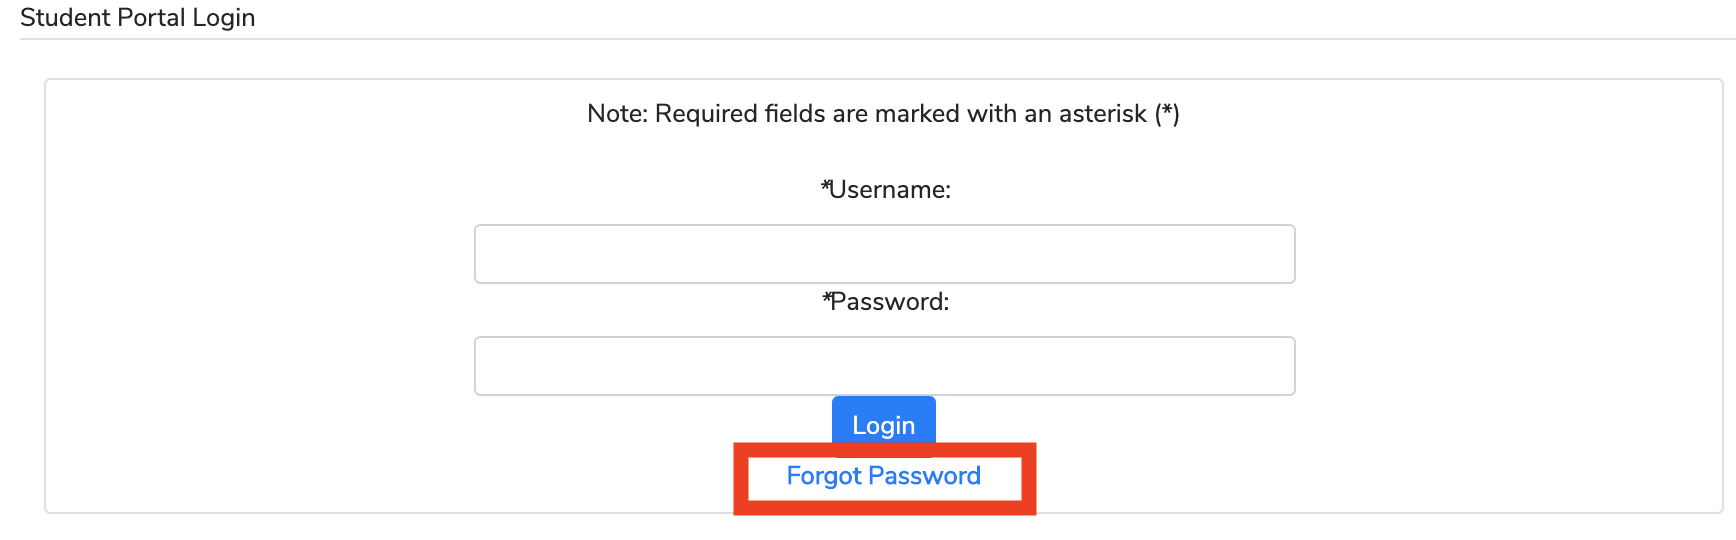 forgot password button